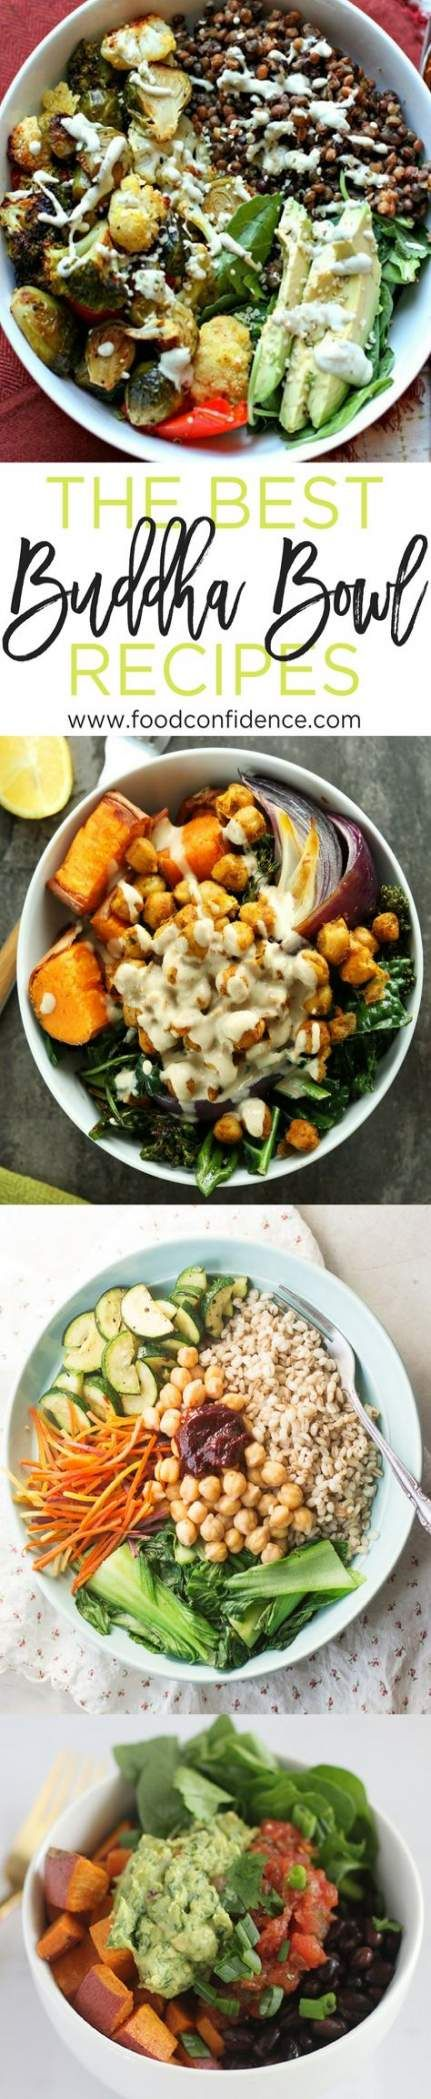 50+ Ideas Fitness Food Recipes Lunch #food #fitness #recipes